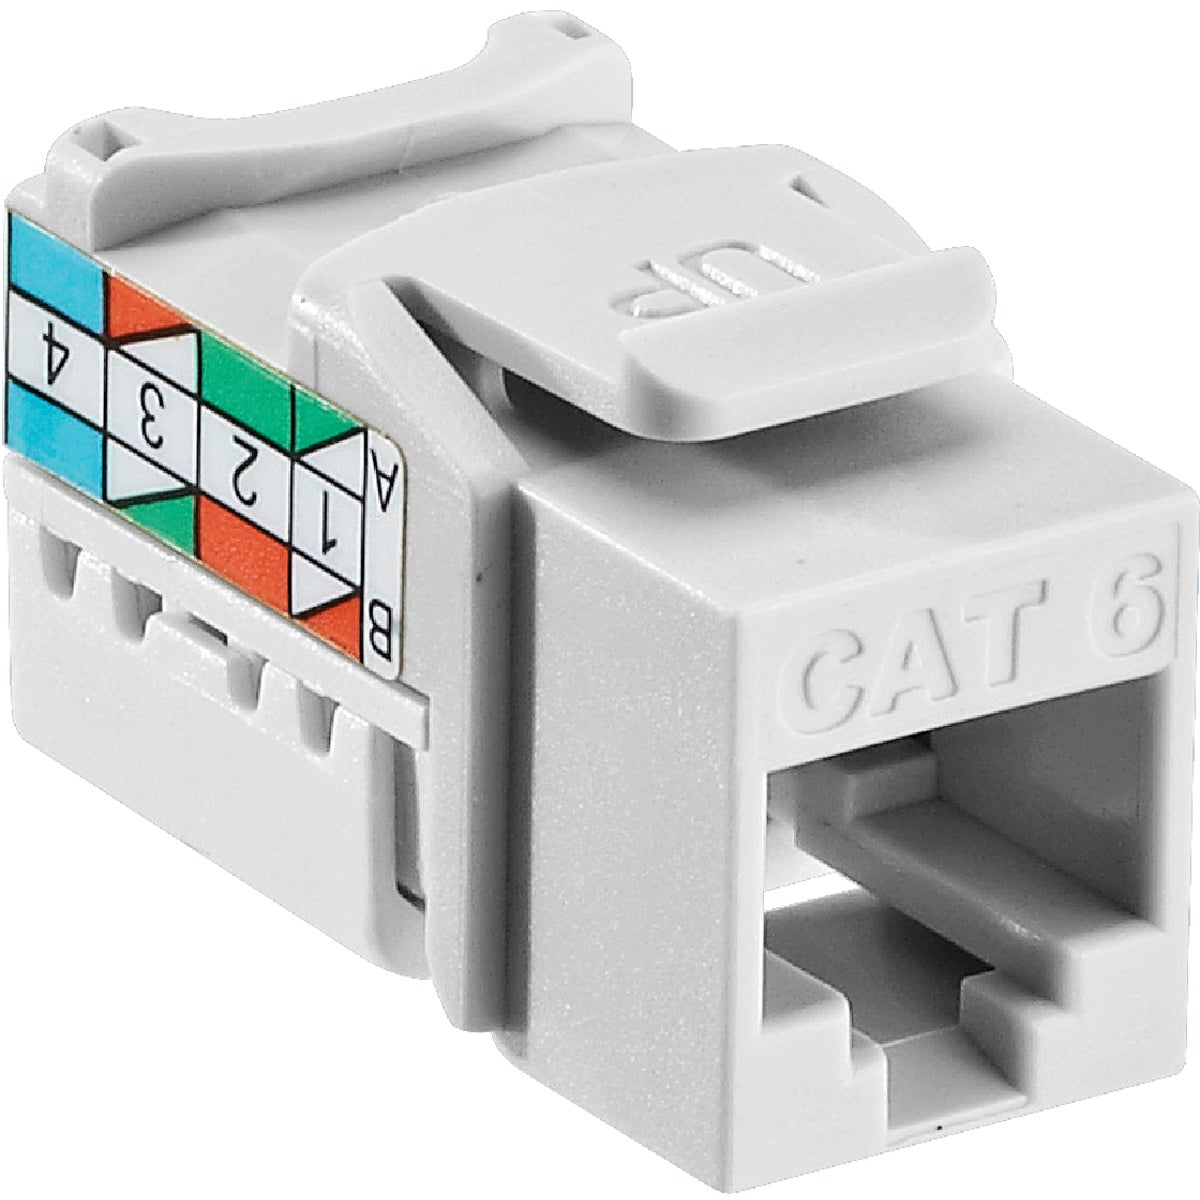 WHT 8-WIRE CAT6 JACK